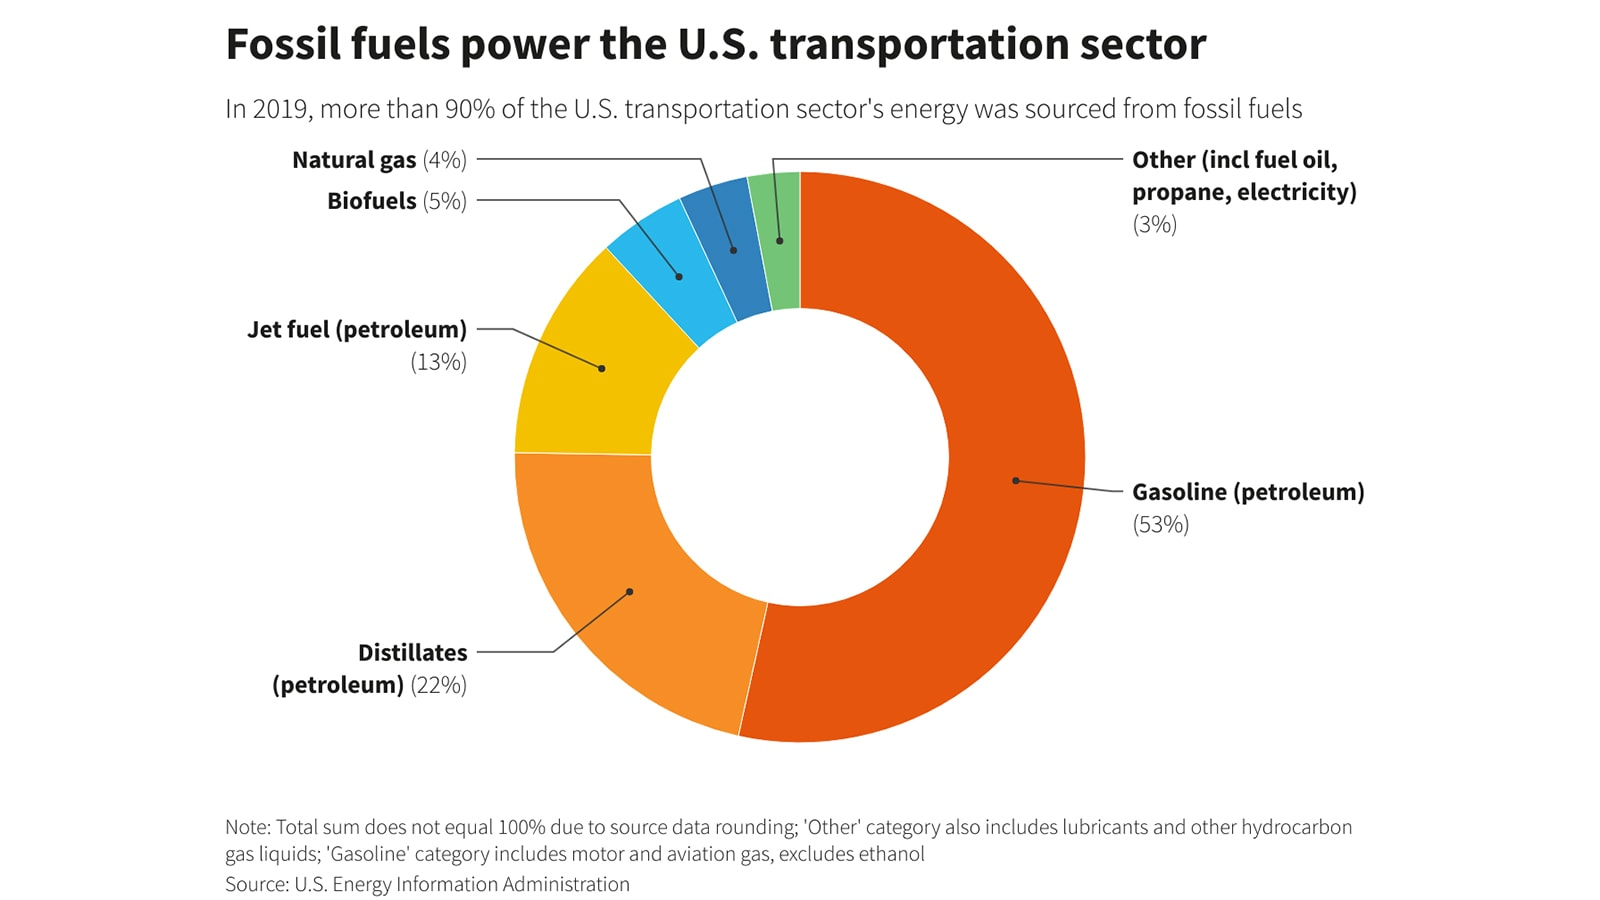 Fossil fuels power the U.S. transportation sector